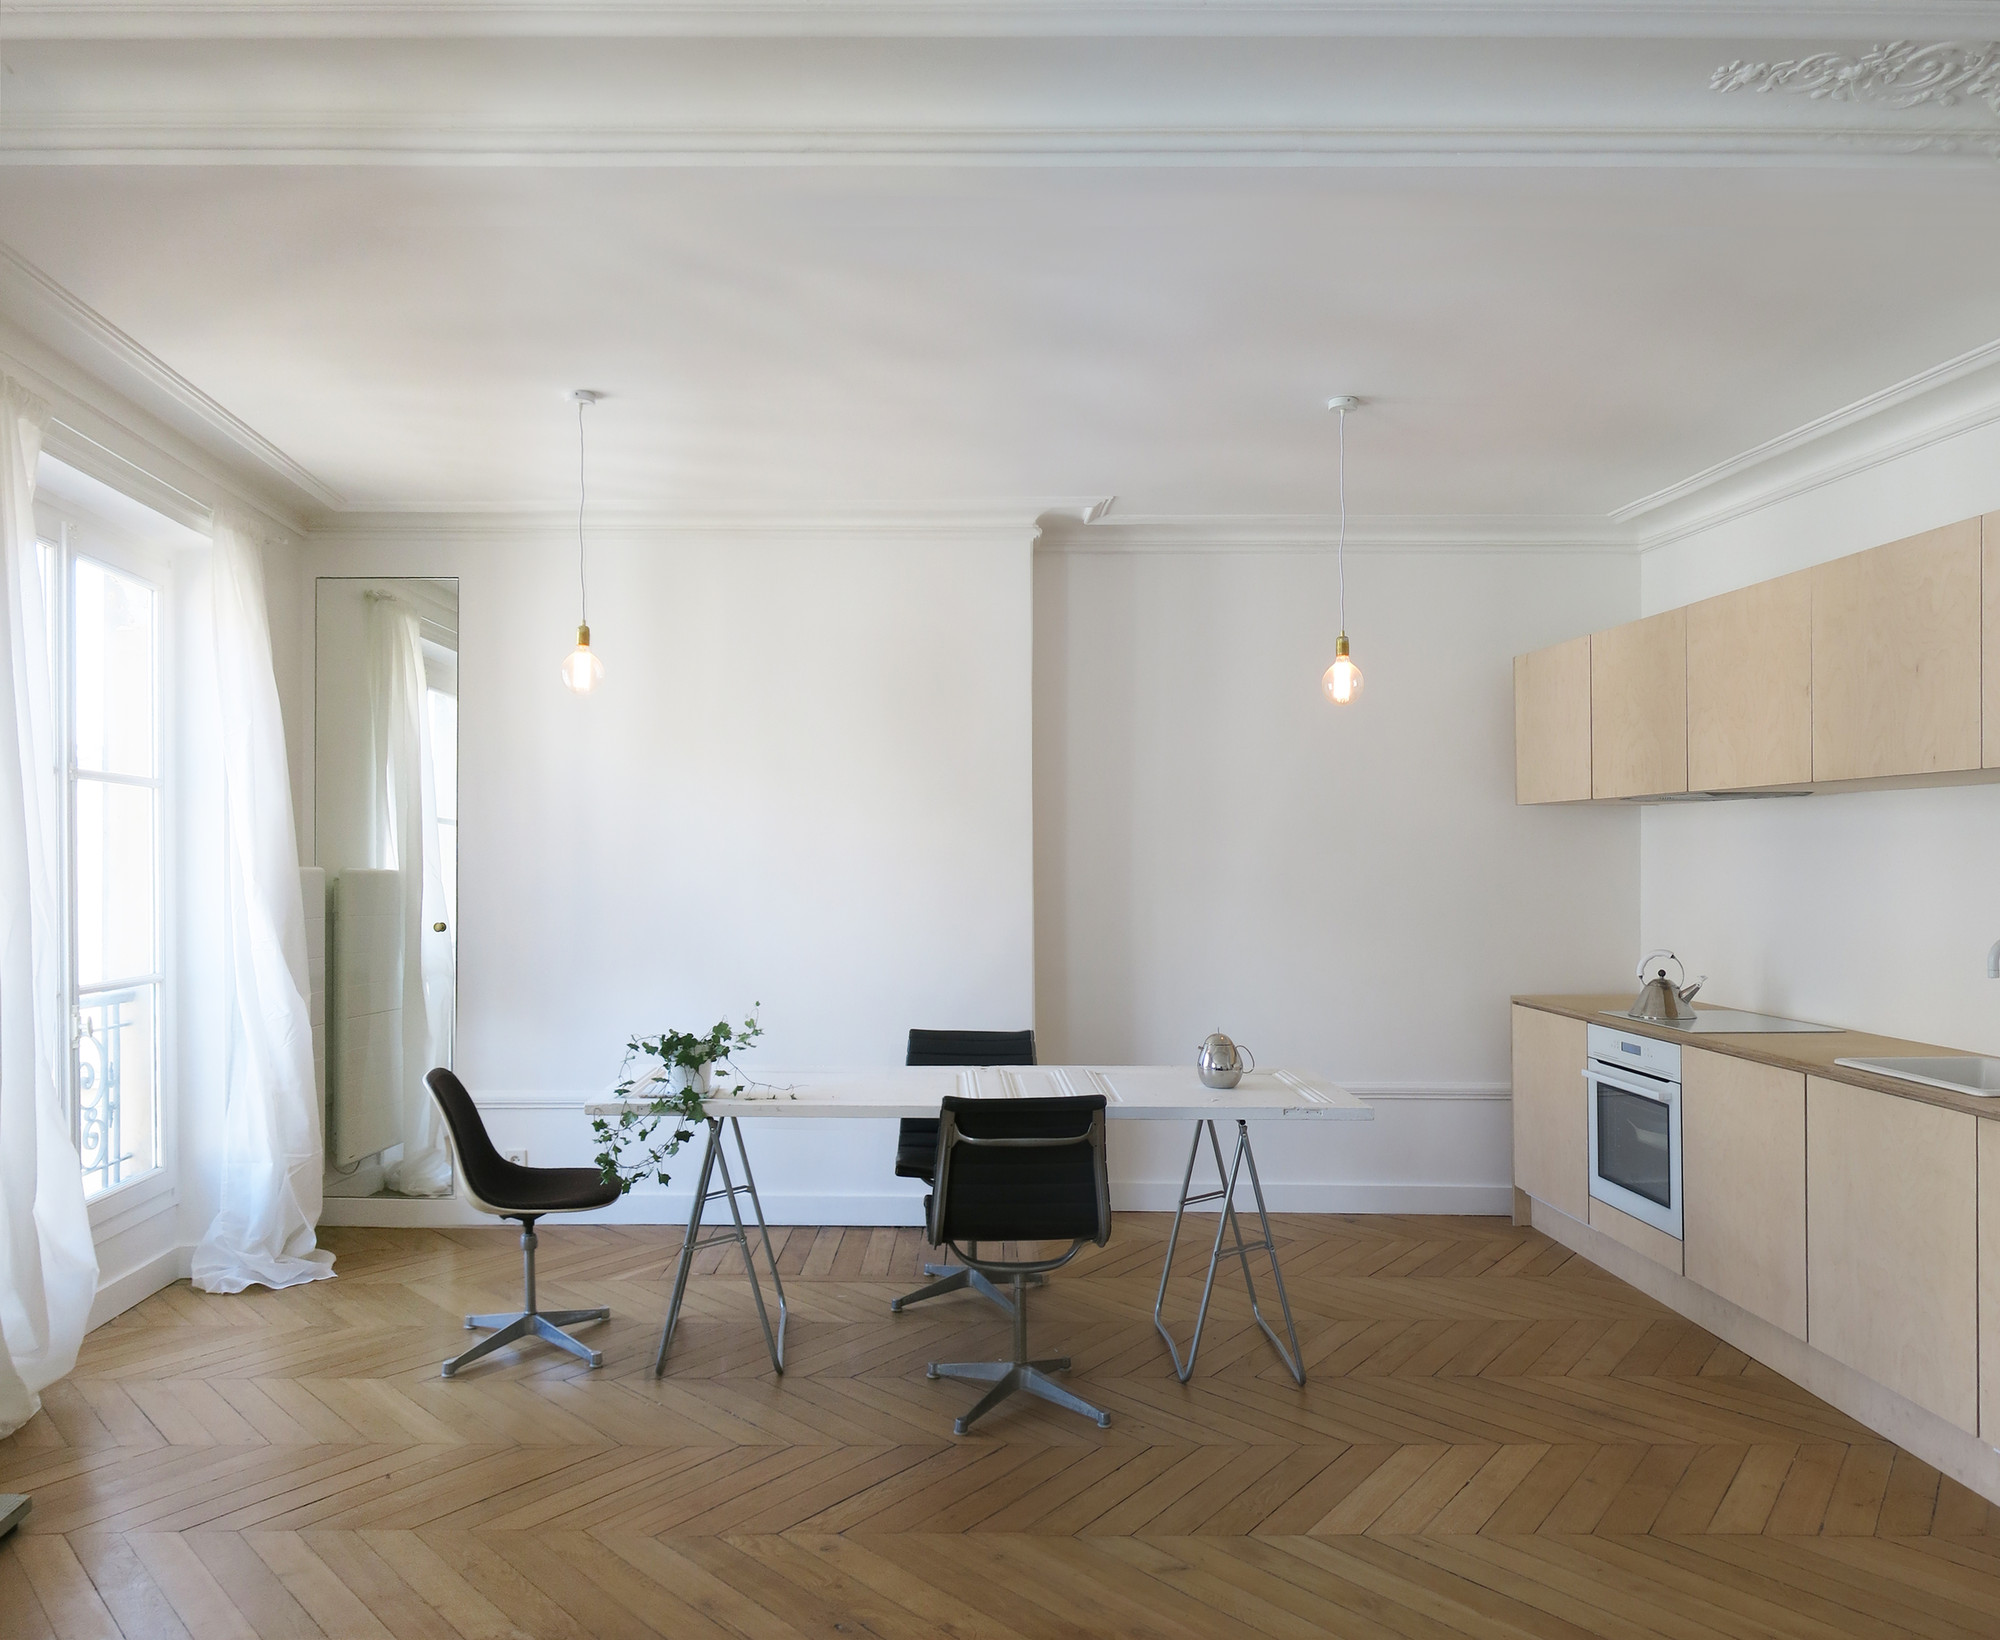 Renovated Parisian flat / JKLN, Courtesy of JKLN